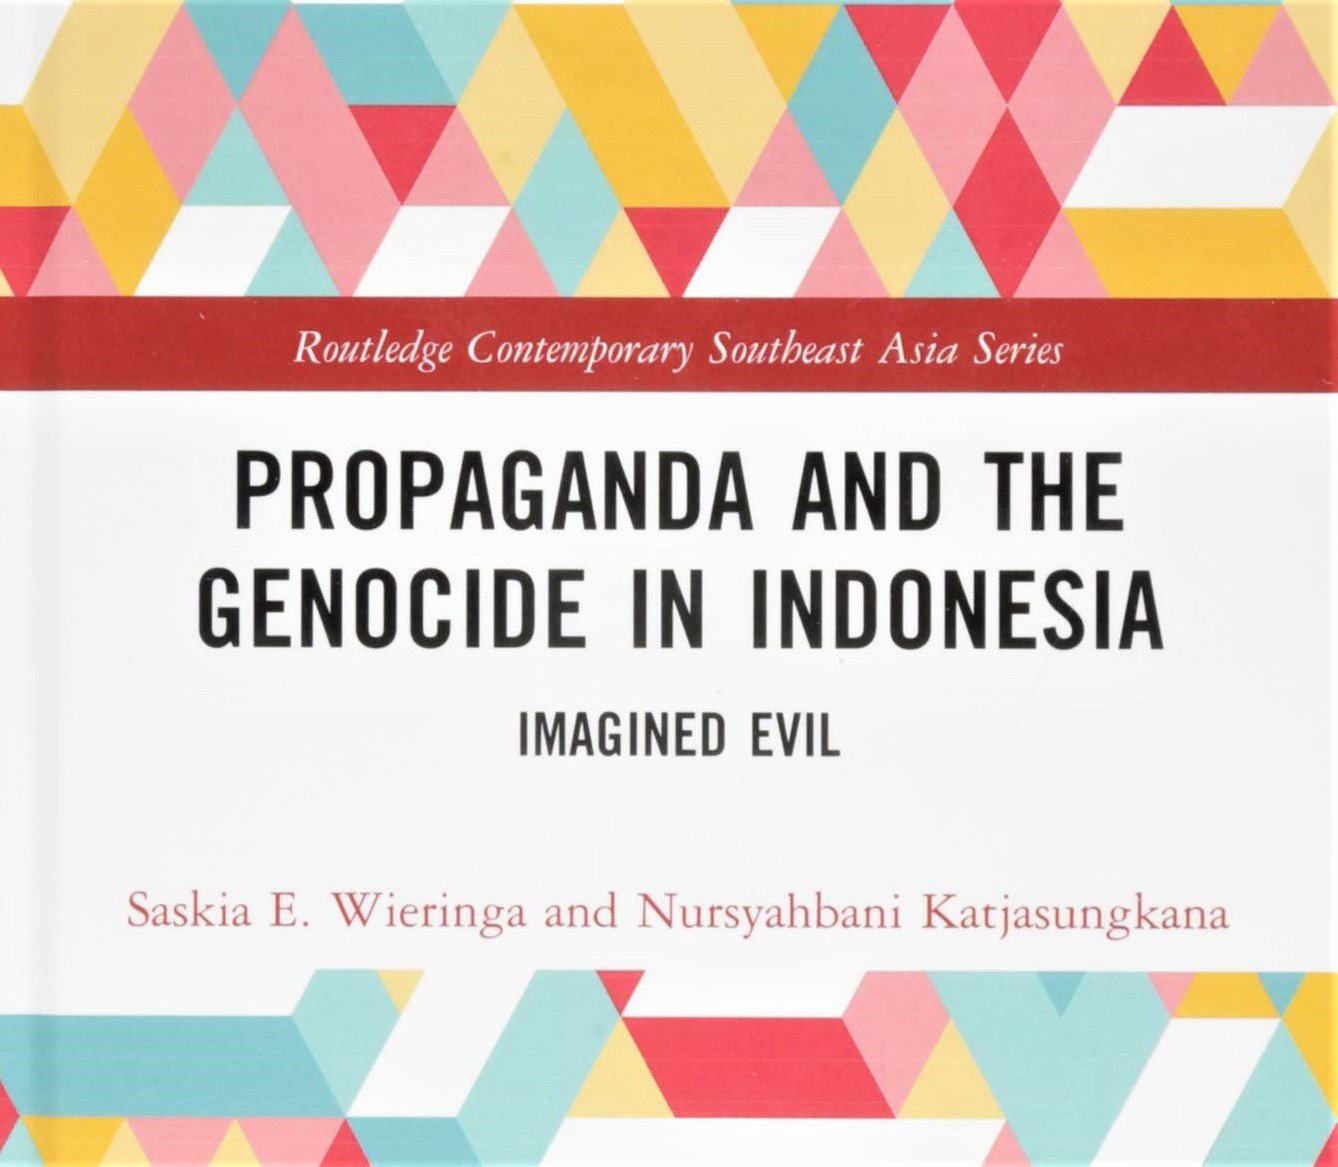 'Propaganda and the Genocide': The national wound weeps still